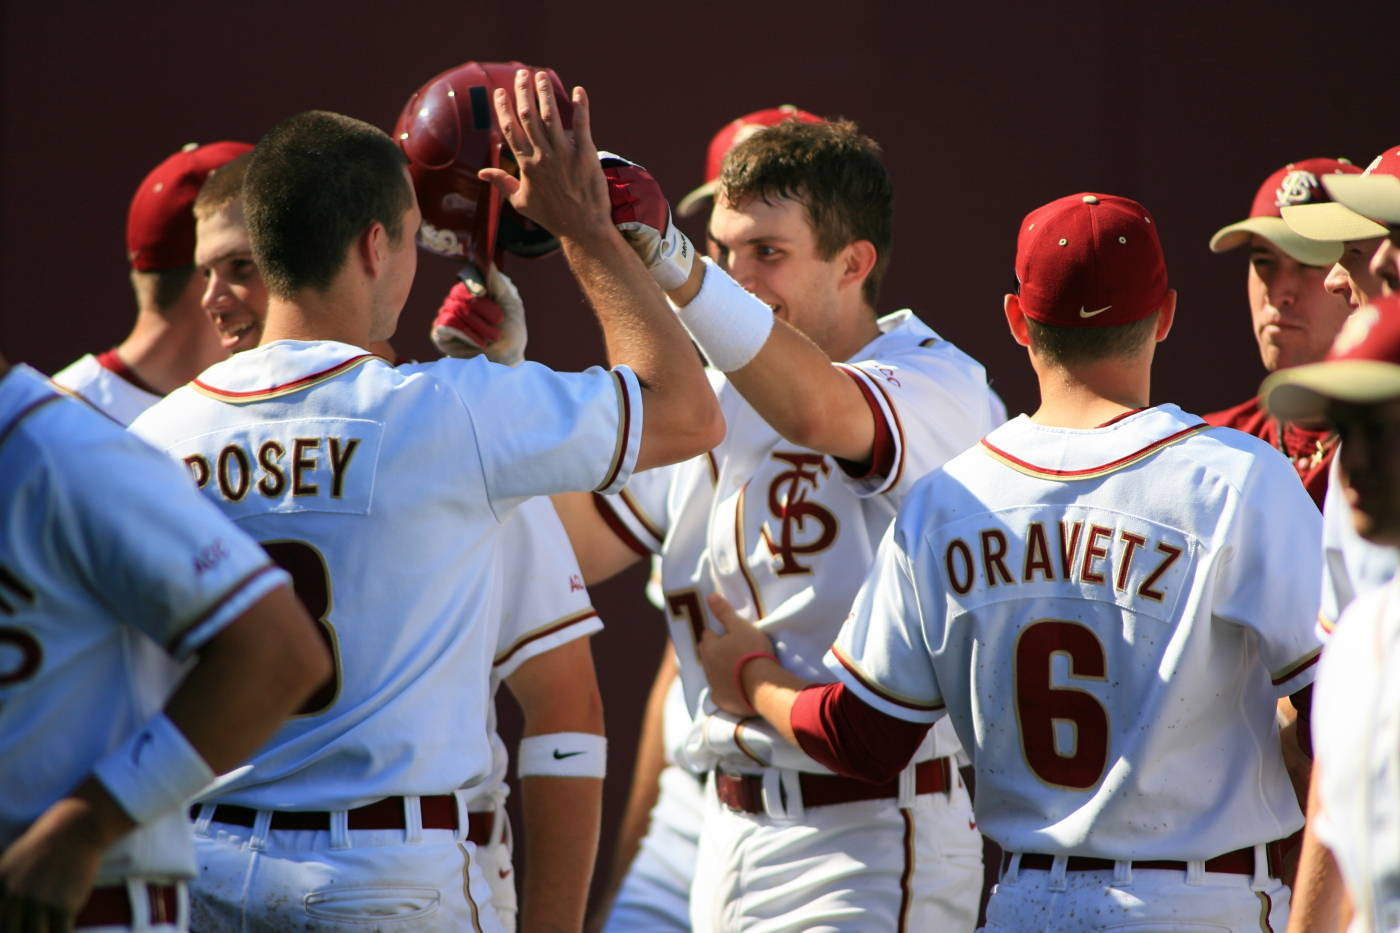 The Seminoles celebrate following Parker Brunelle's home run in game one